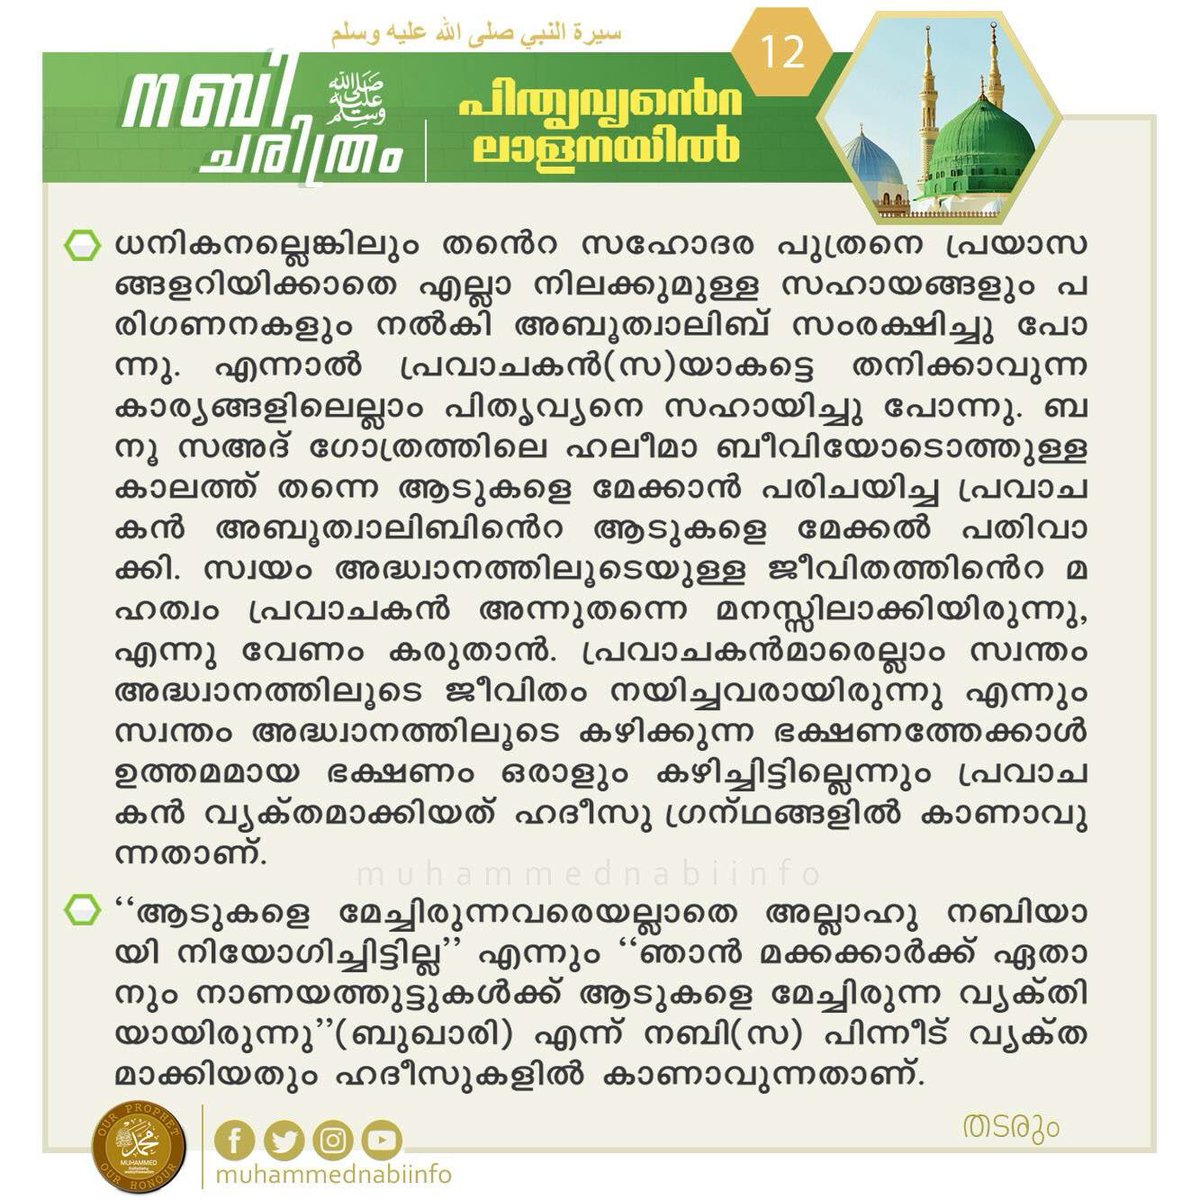 Malayalam Quran on Twitter: